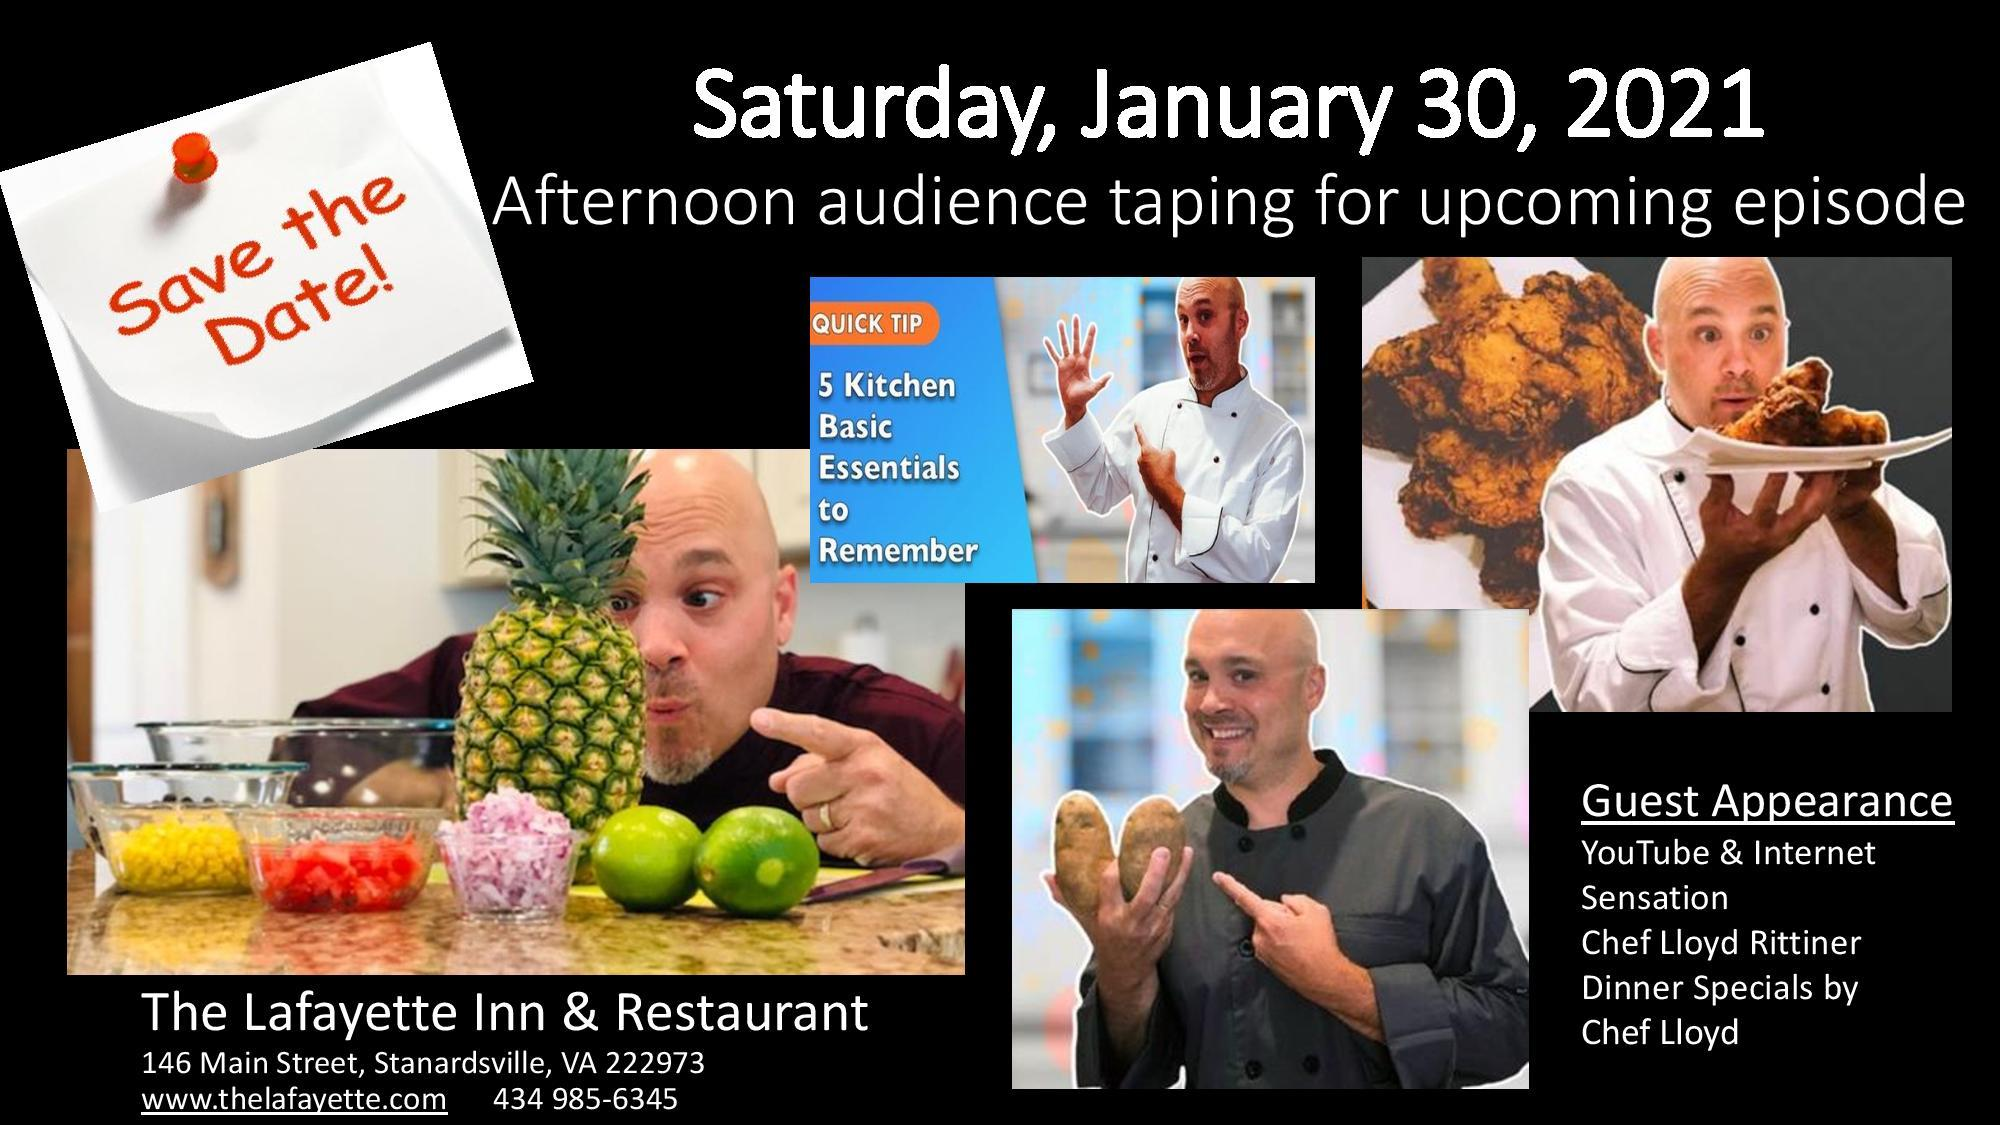 Saturday, January 30th, 2021. Afternoon audience taping for upcoming episode. Guest appearance youtube and internet sensation, chef lloyd rittiner dinner specials by chef lloyd.